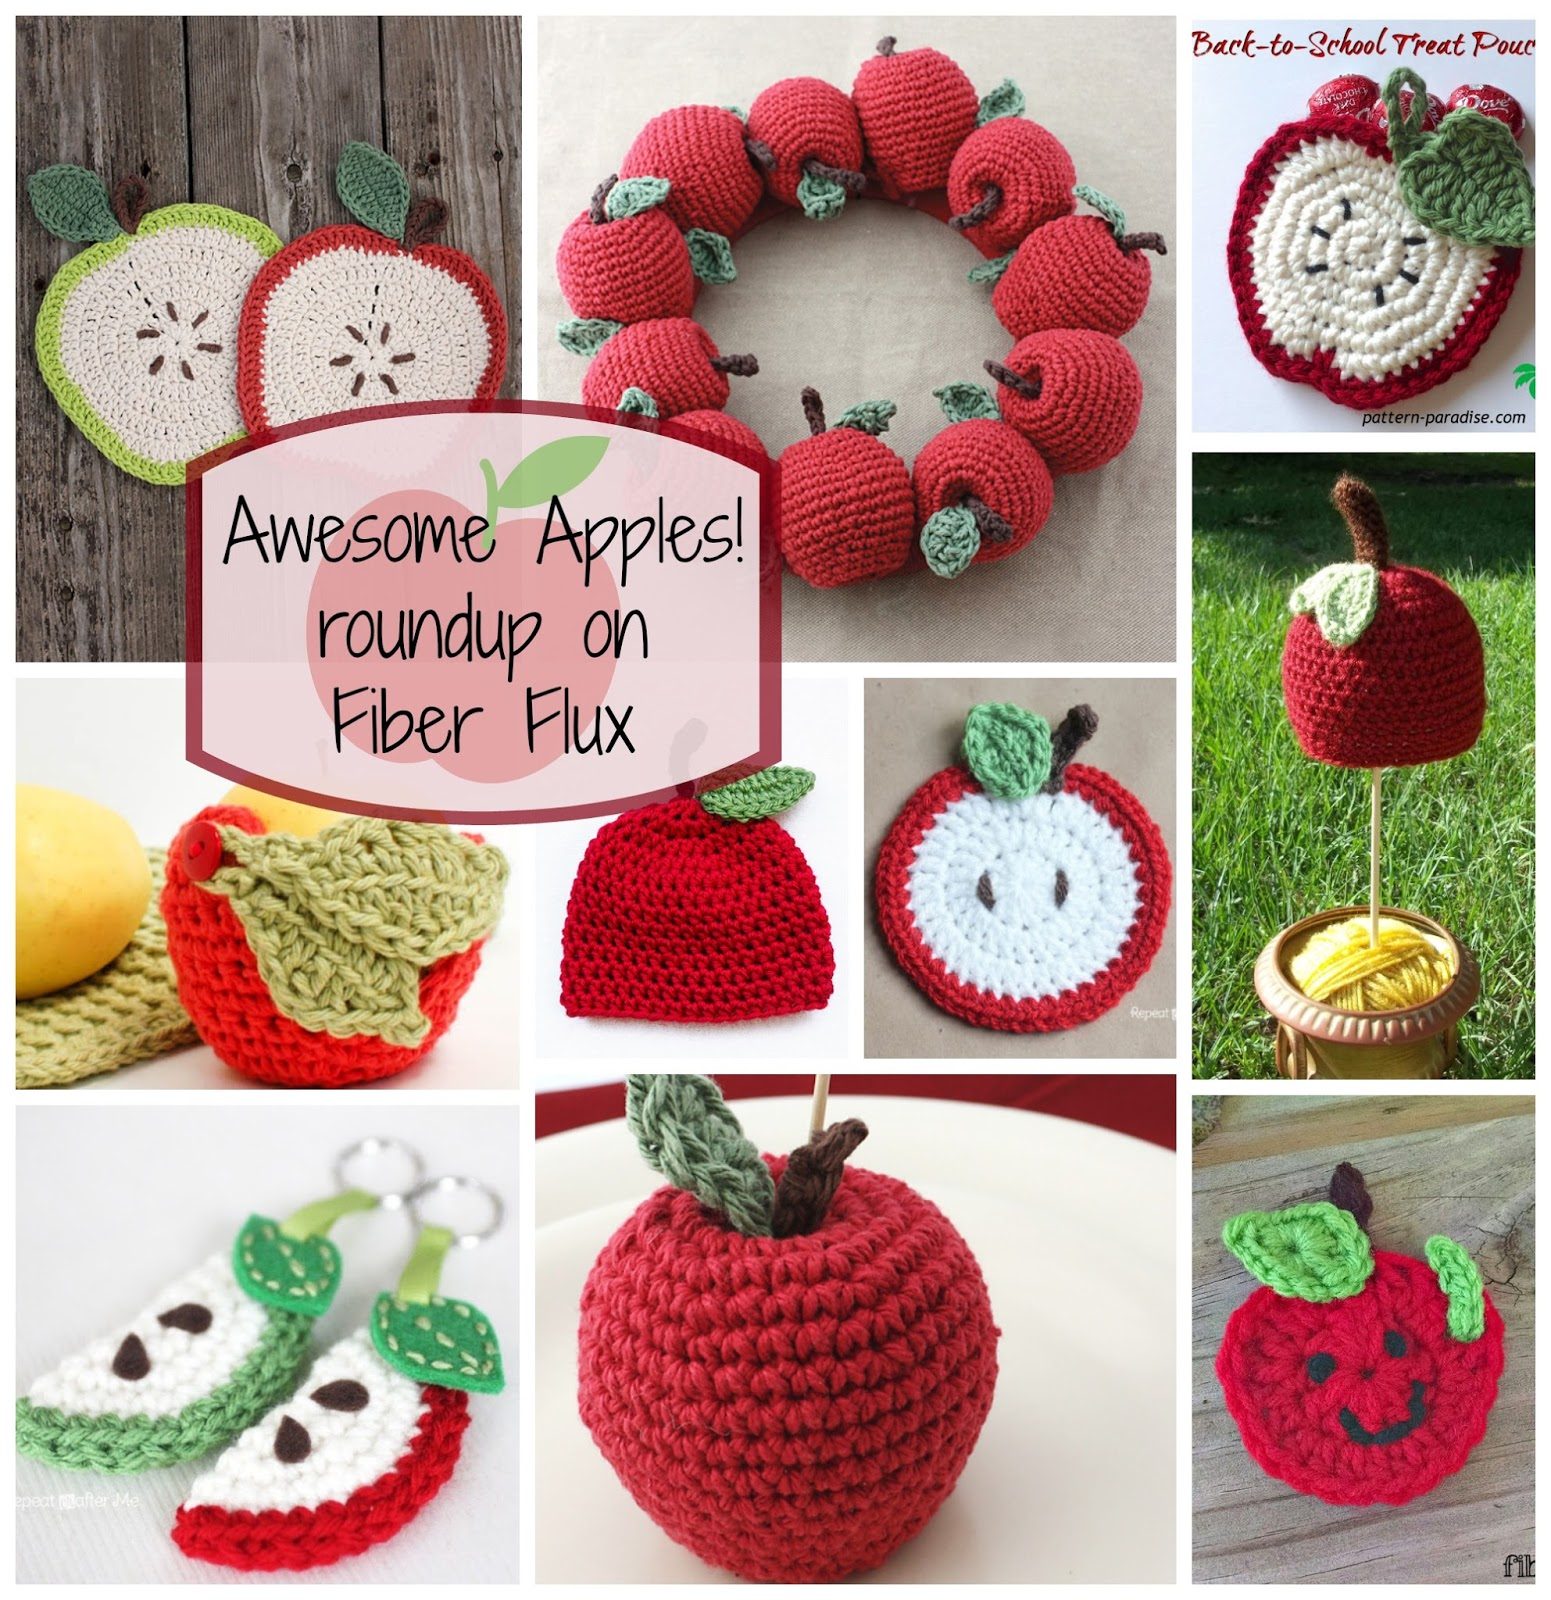 Fiber Flux Awesome Apples 10 Free Crochet Patterns